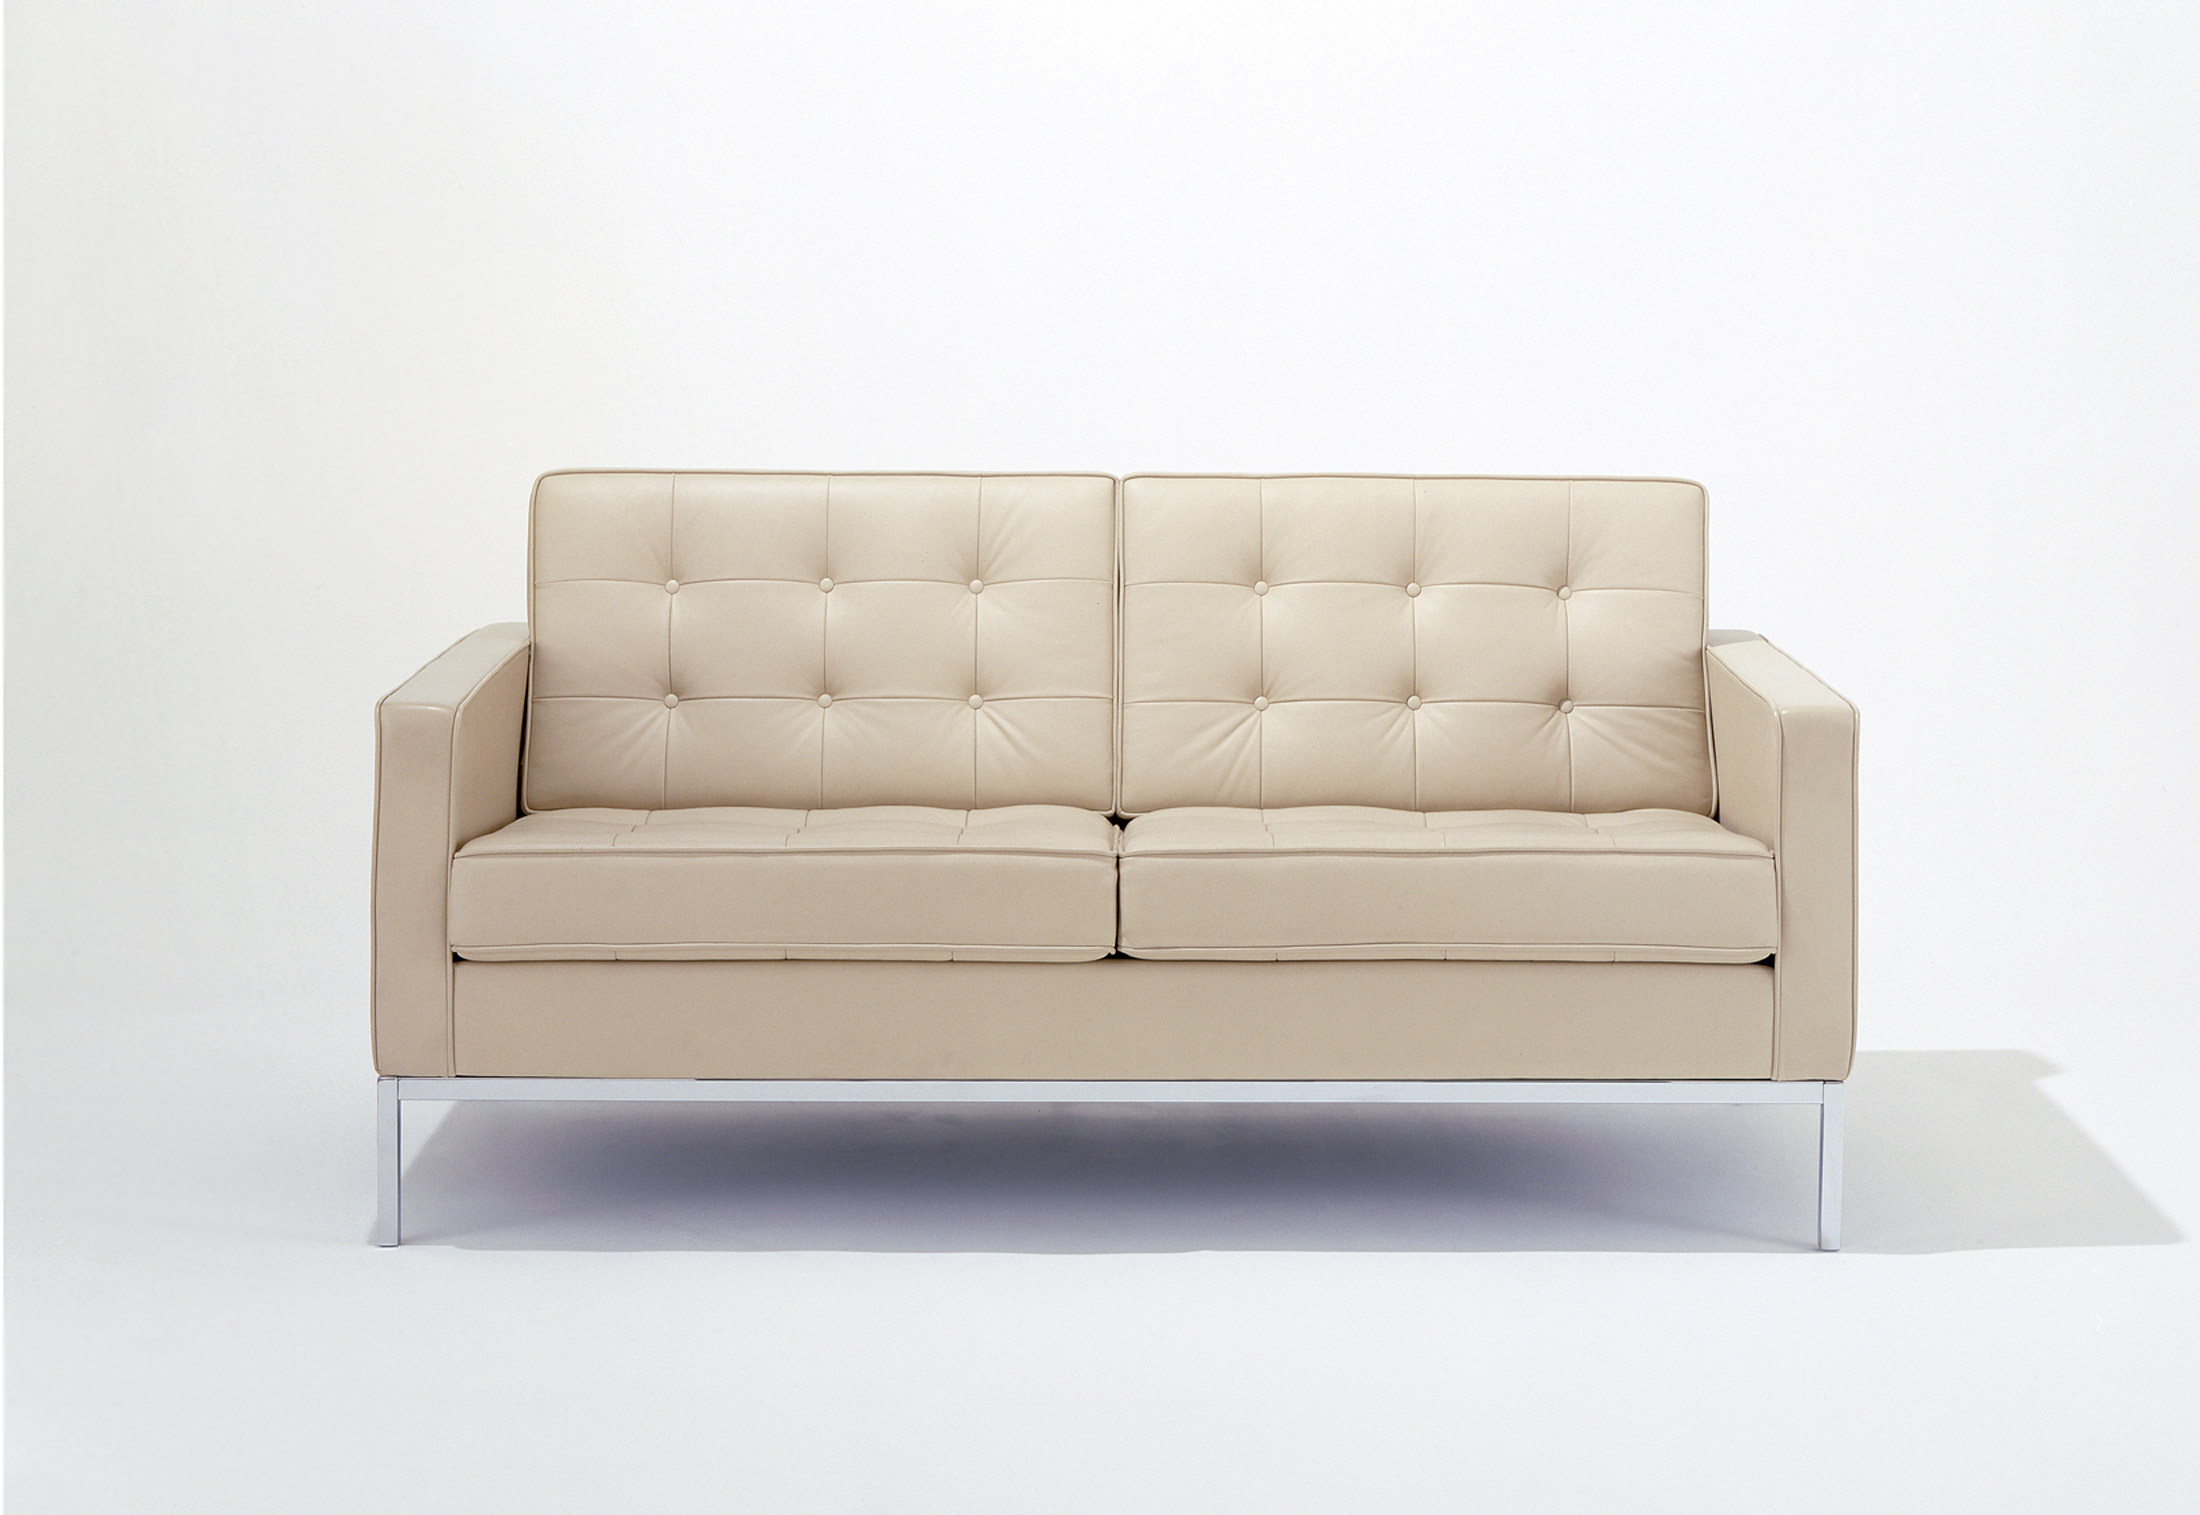 Florence Knoll Corner Sofa – Vincyhuii22 In Florence Knoll Fabric Sofas (View 12 of 15)